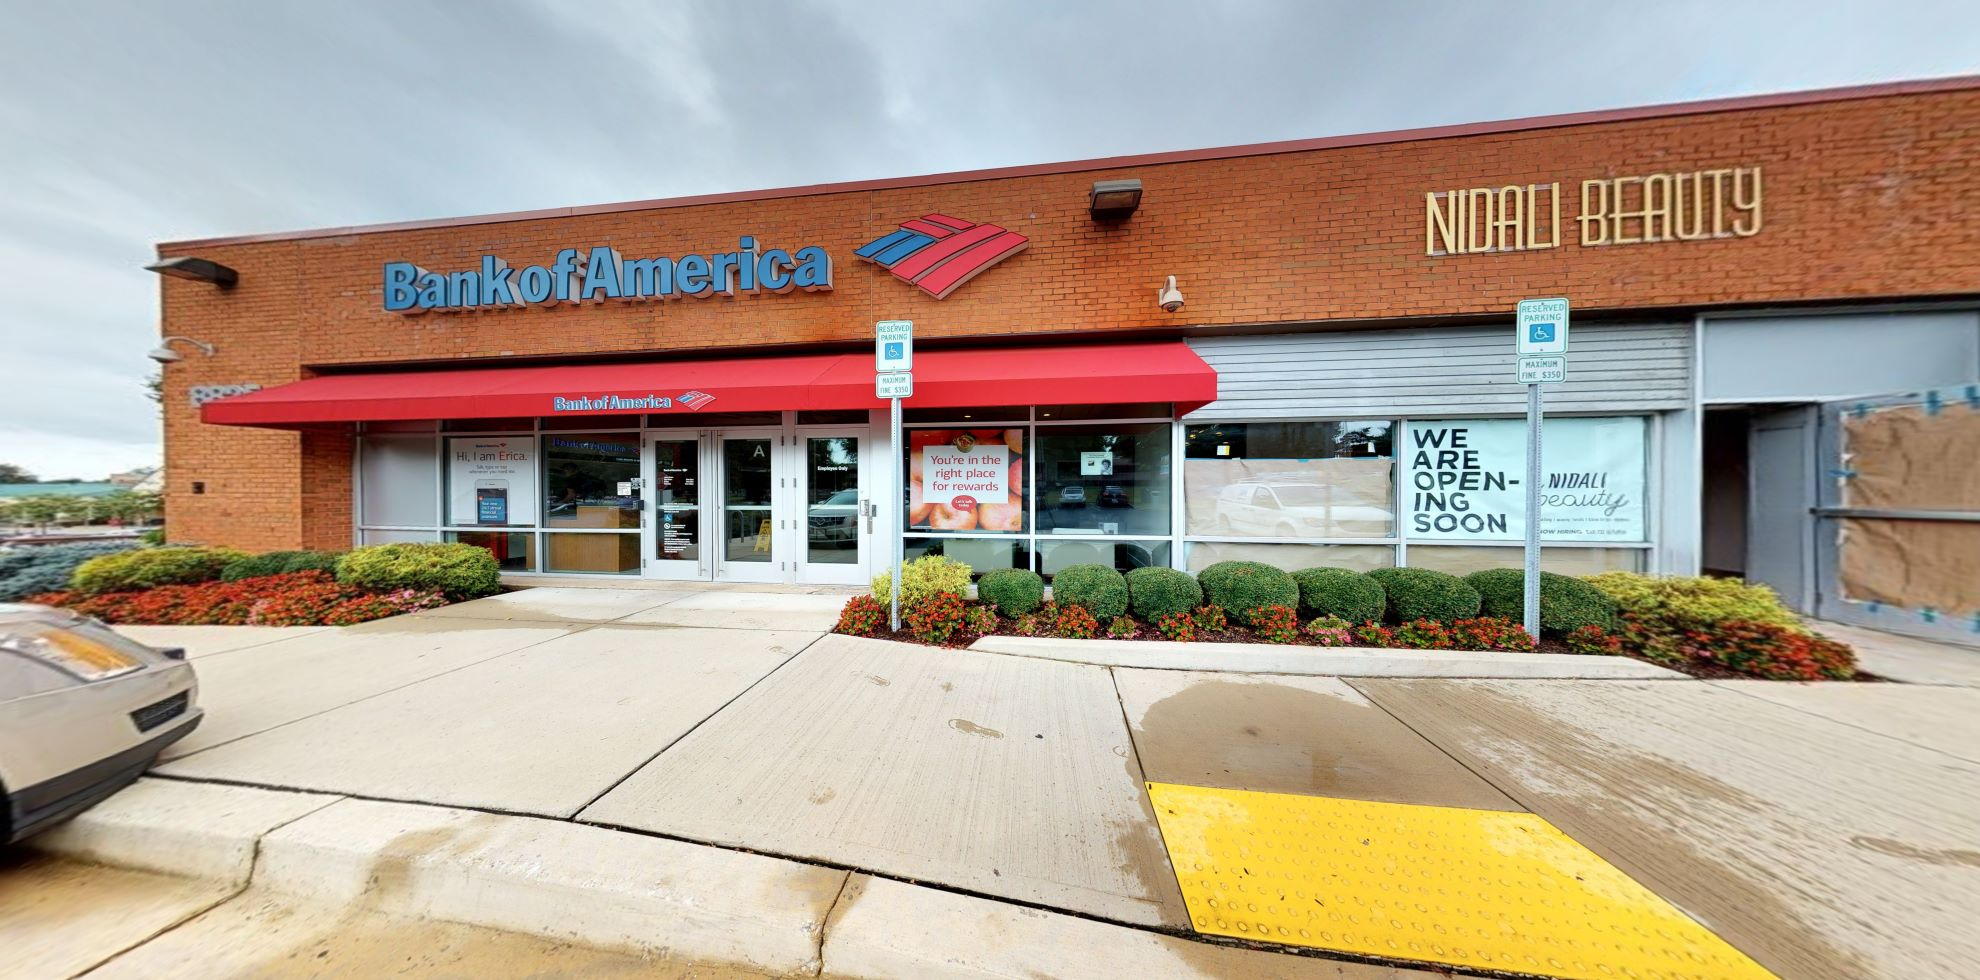 Bank of America financial center with drive-thru ATM | 8825 Centre Park Dr, Columbia, MD 21045